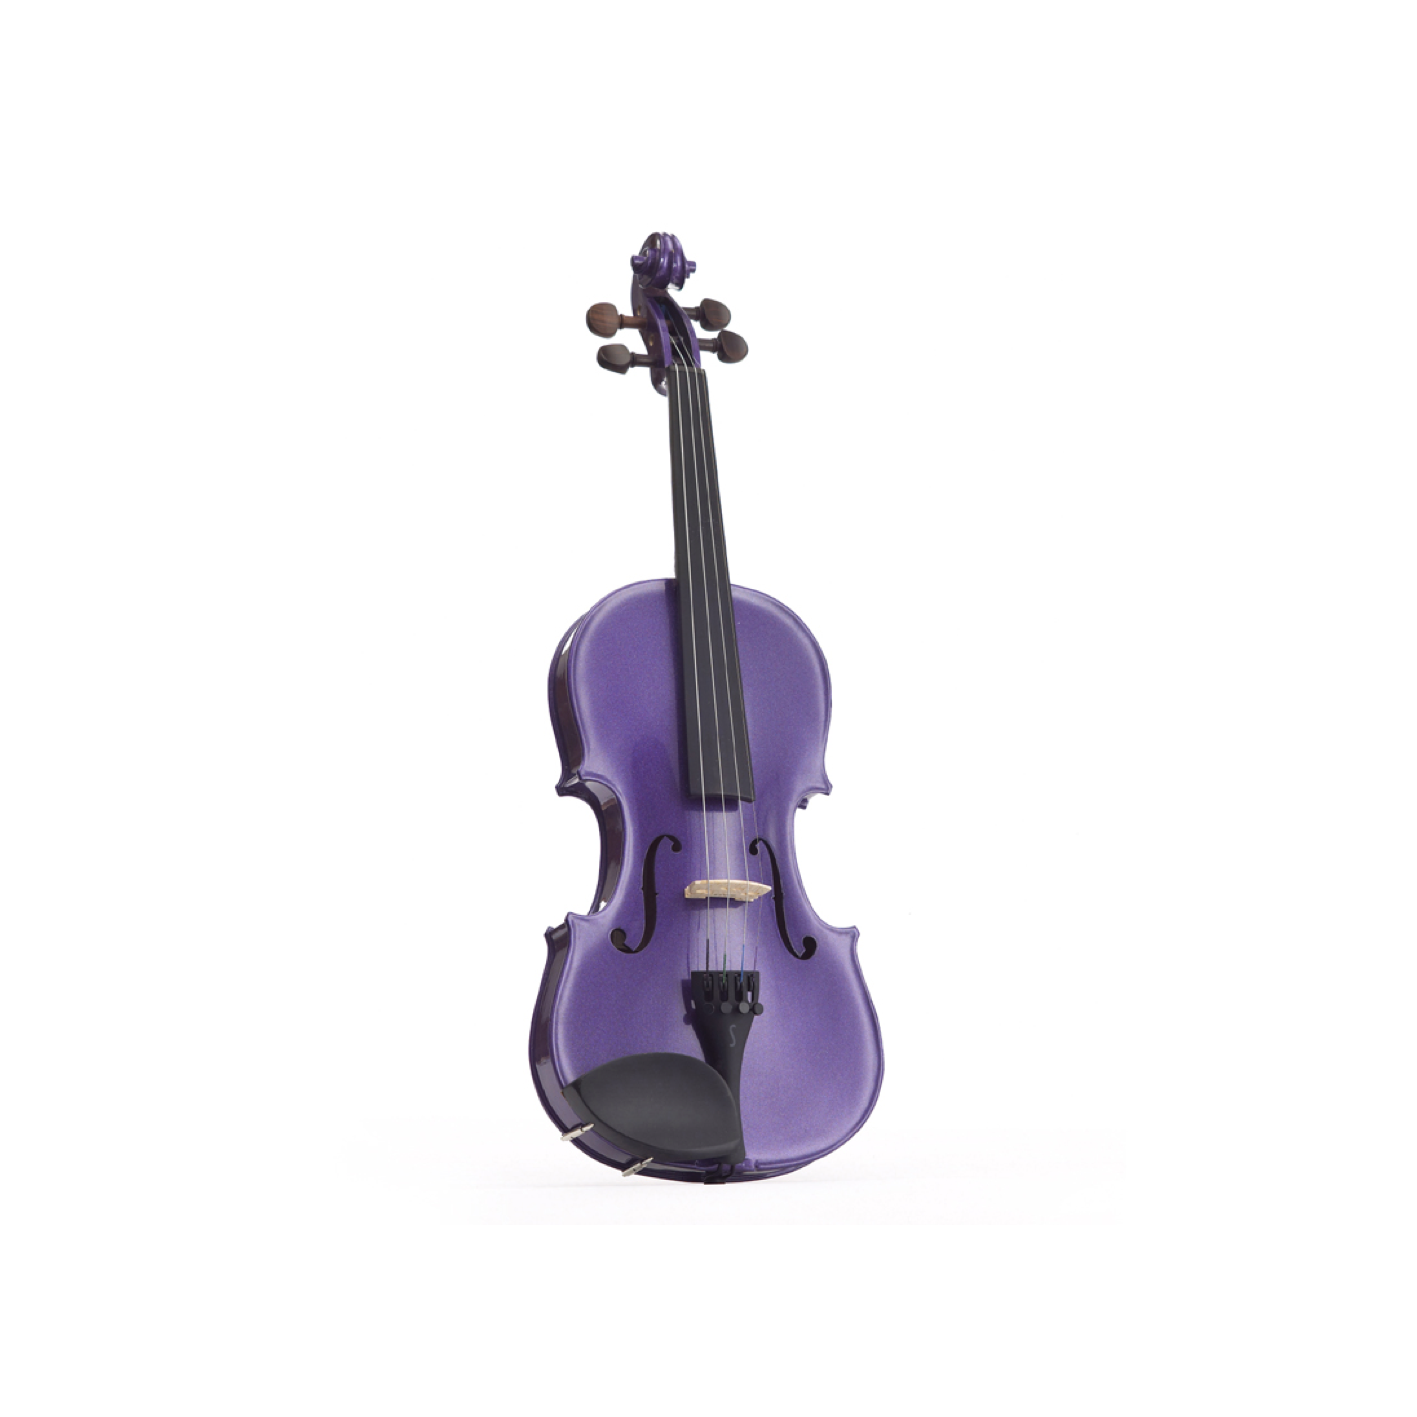 Stentor Harlequin 1401 3/4 Violin Purple